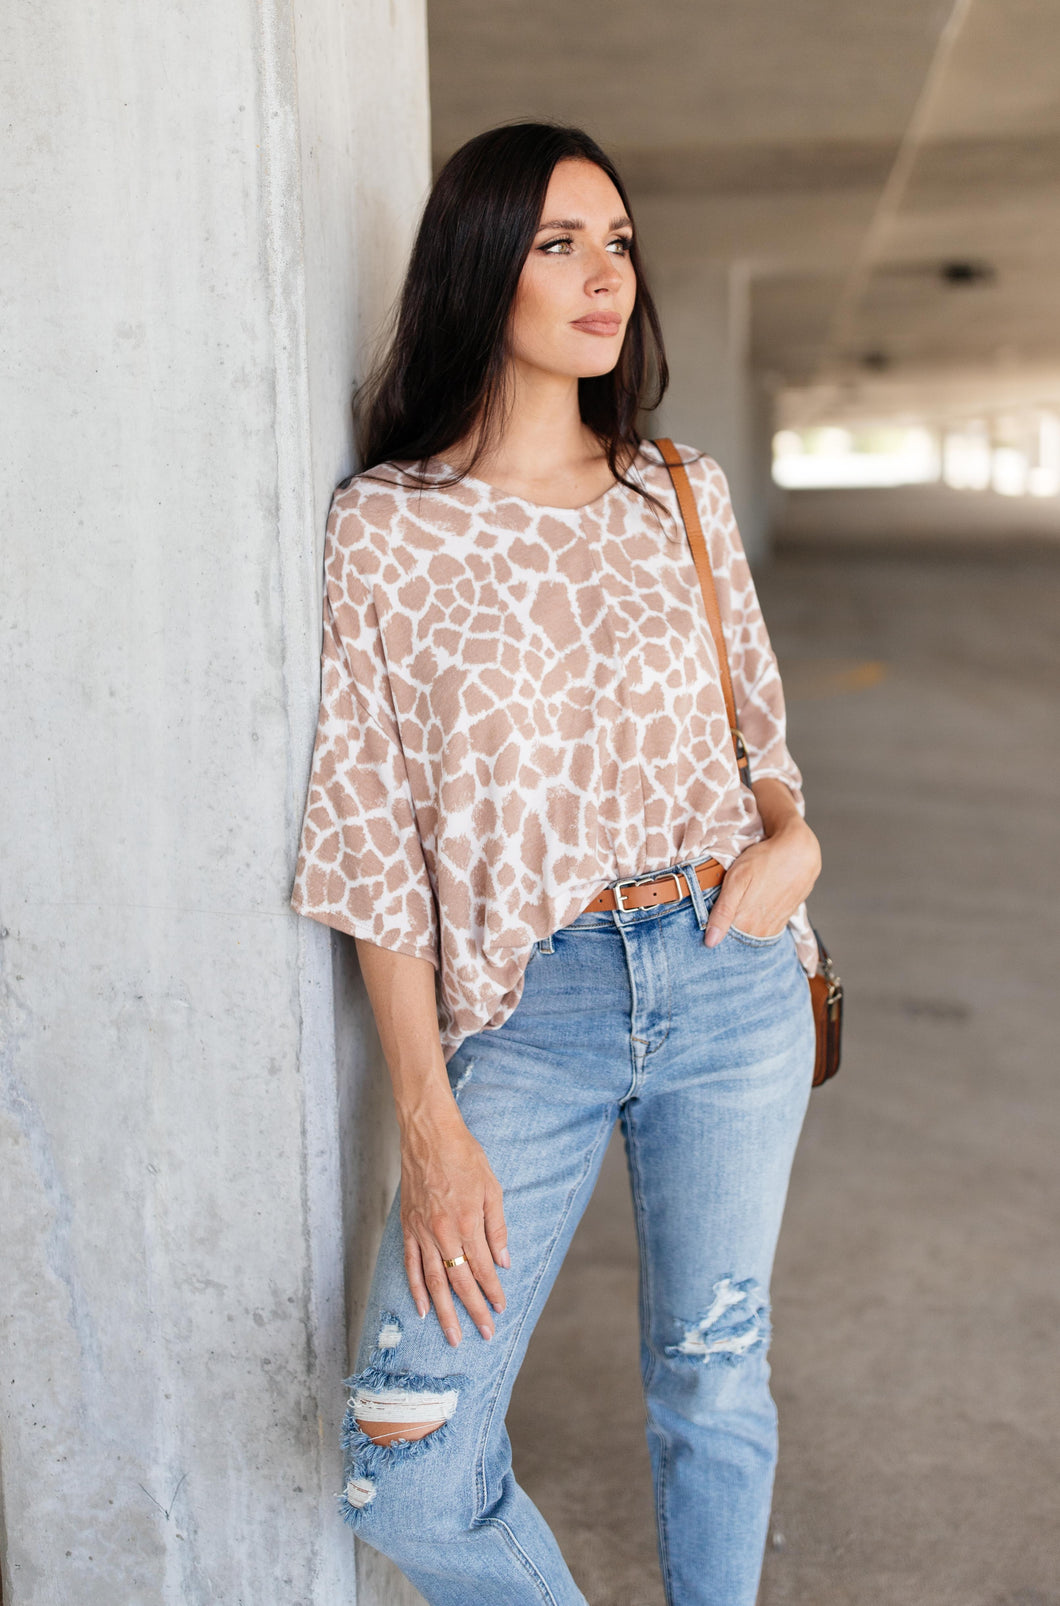 Giraffe Print Bell Sleeve Top - Smith & Vena Online Boutique